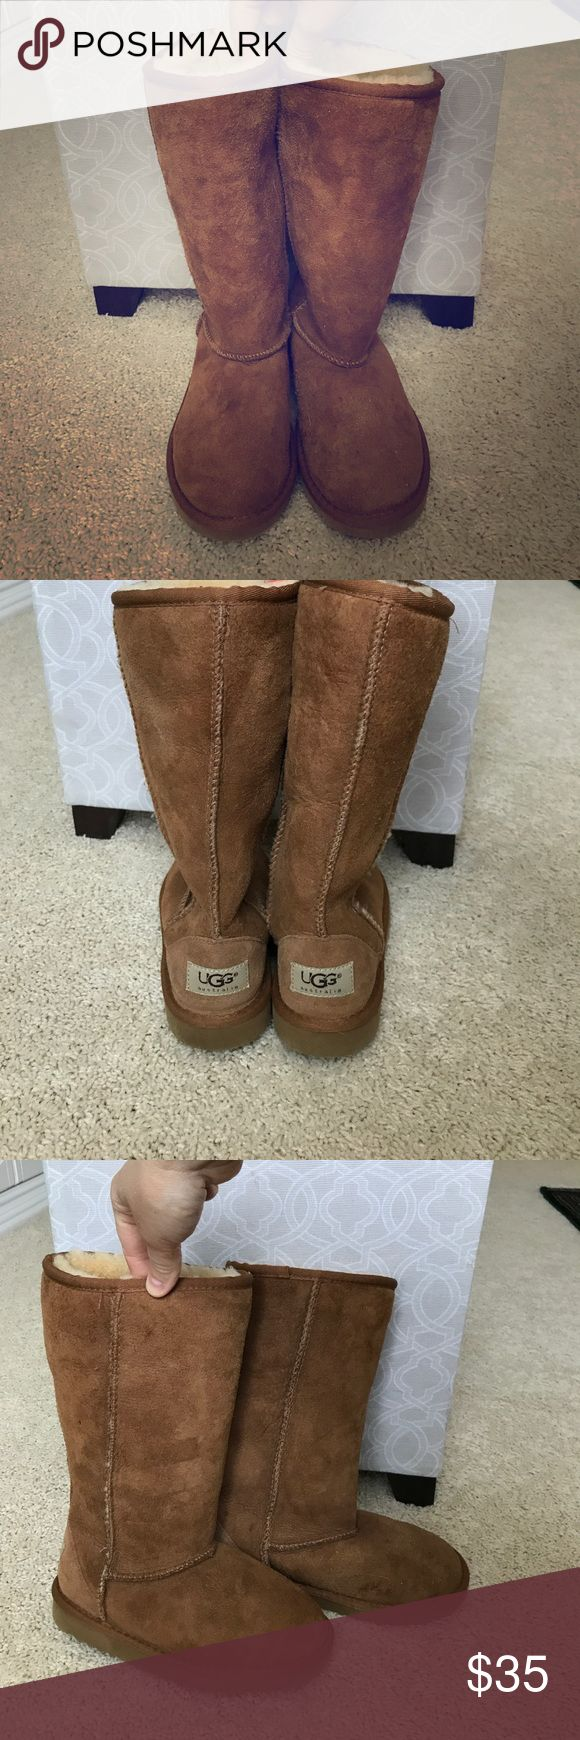 Girls Ugg Boots size 1 lightly worn Girl UGG Boots size 1. Lightly worn but do have a few water marks on them. (See pictures for details) UGG Shoes Boots